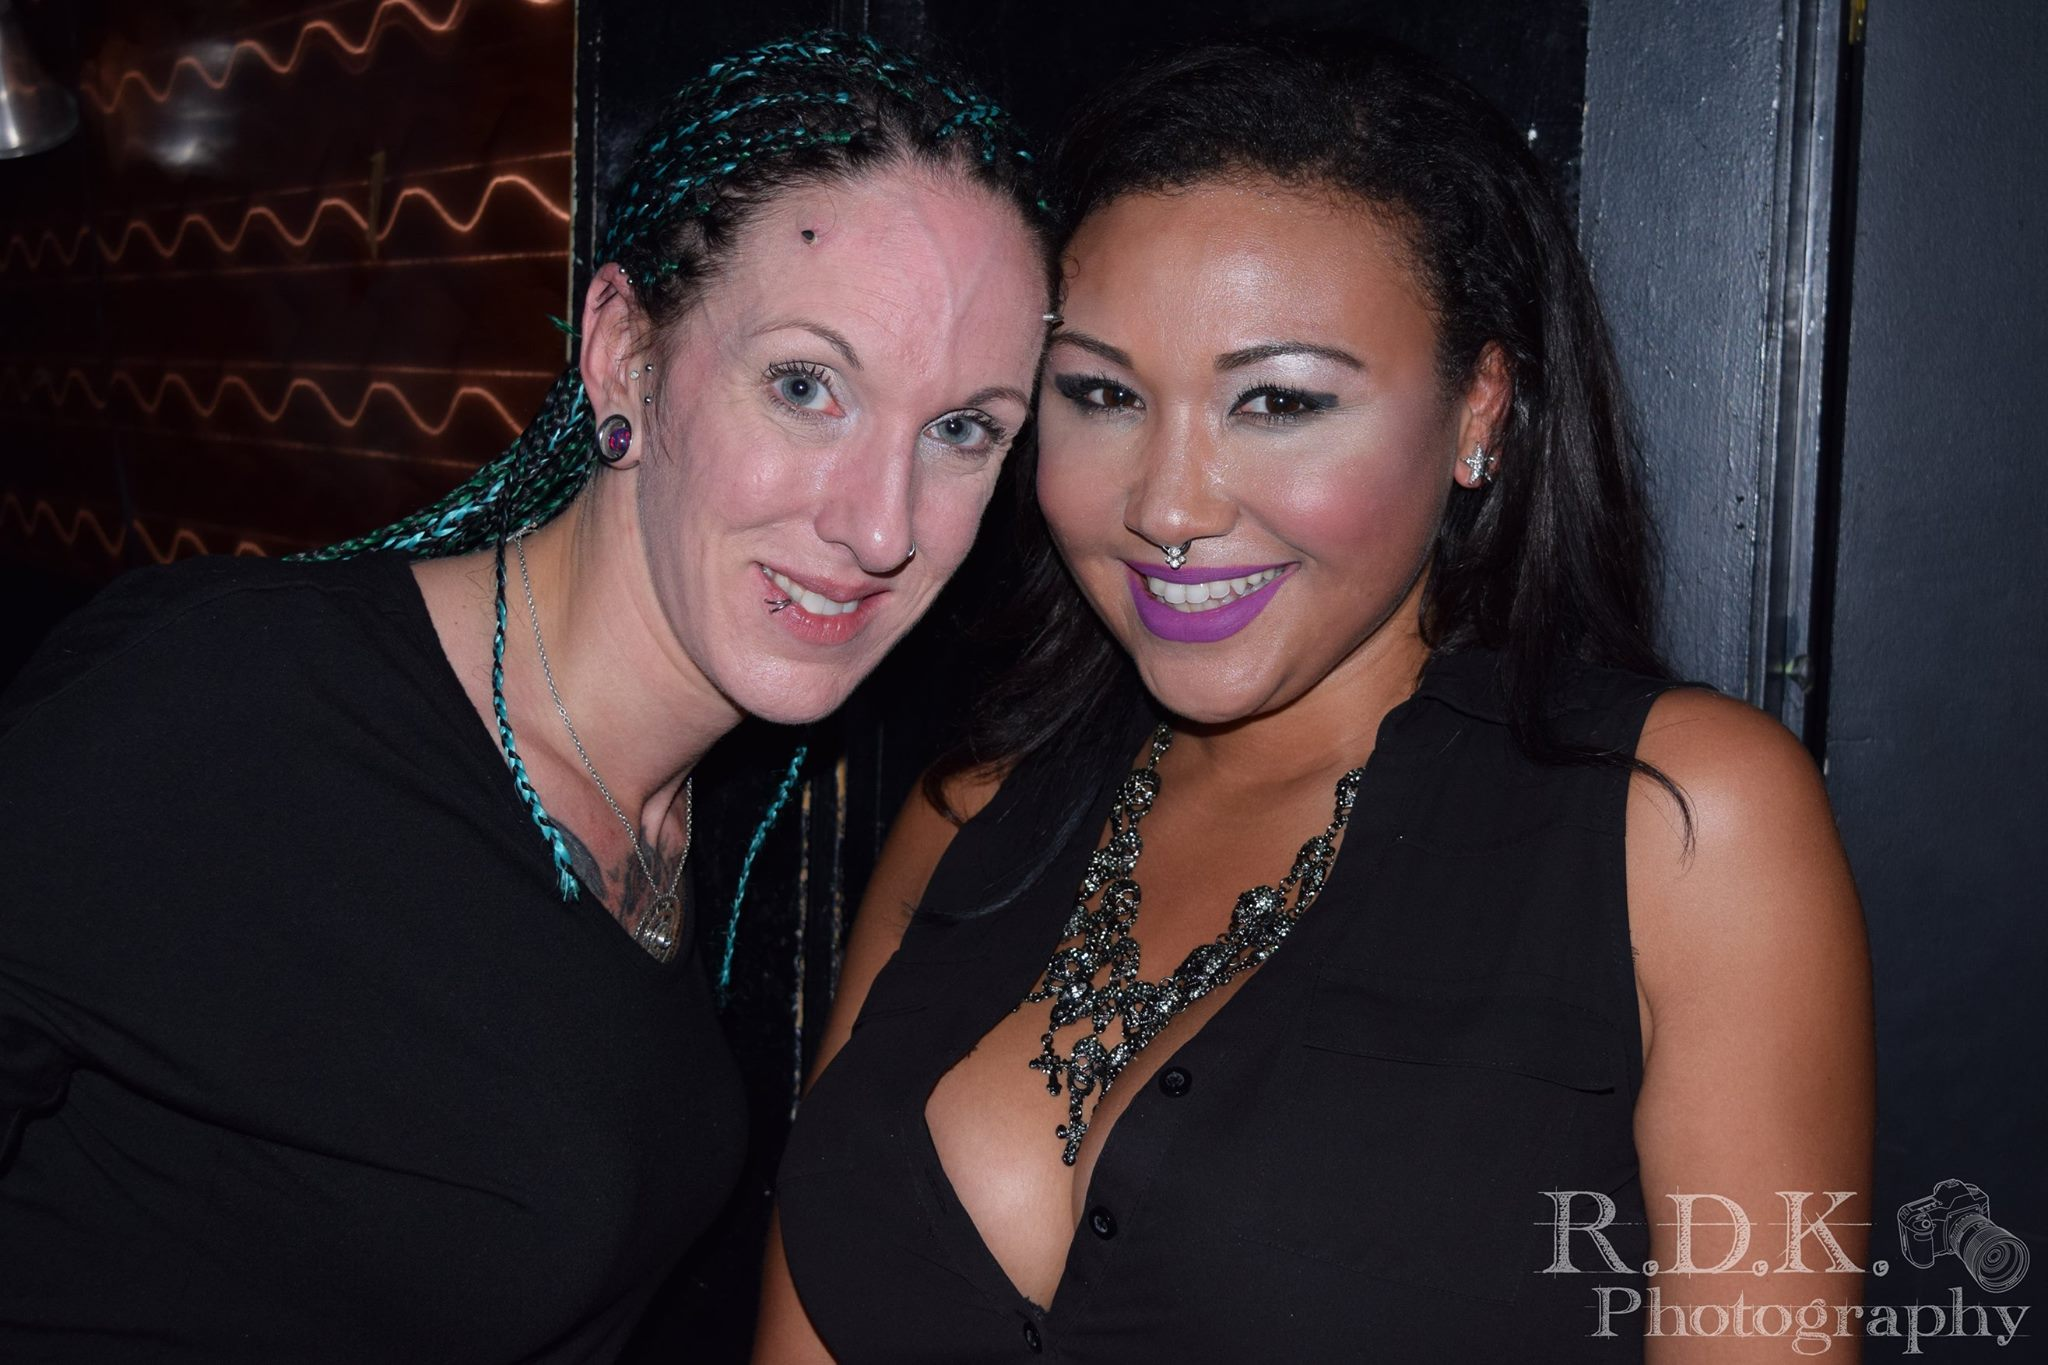 TheHavenClub-Goth-Industrial-Dance-Alternative-Northampton-MA (12).jpg